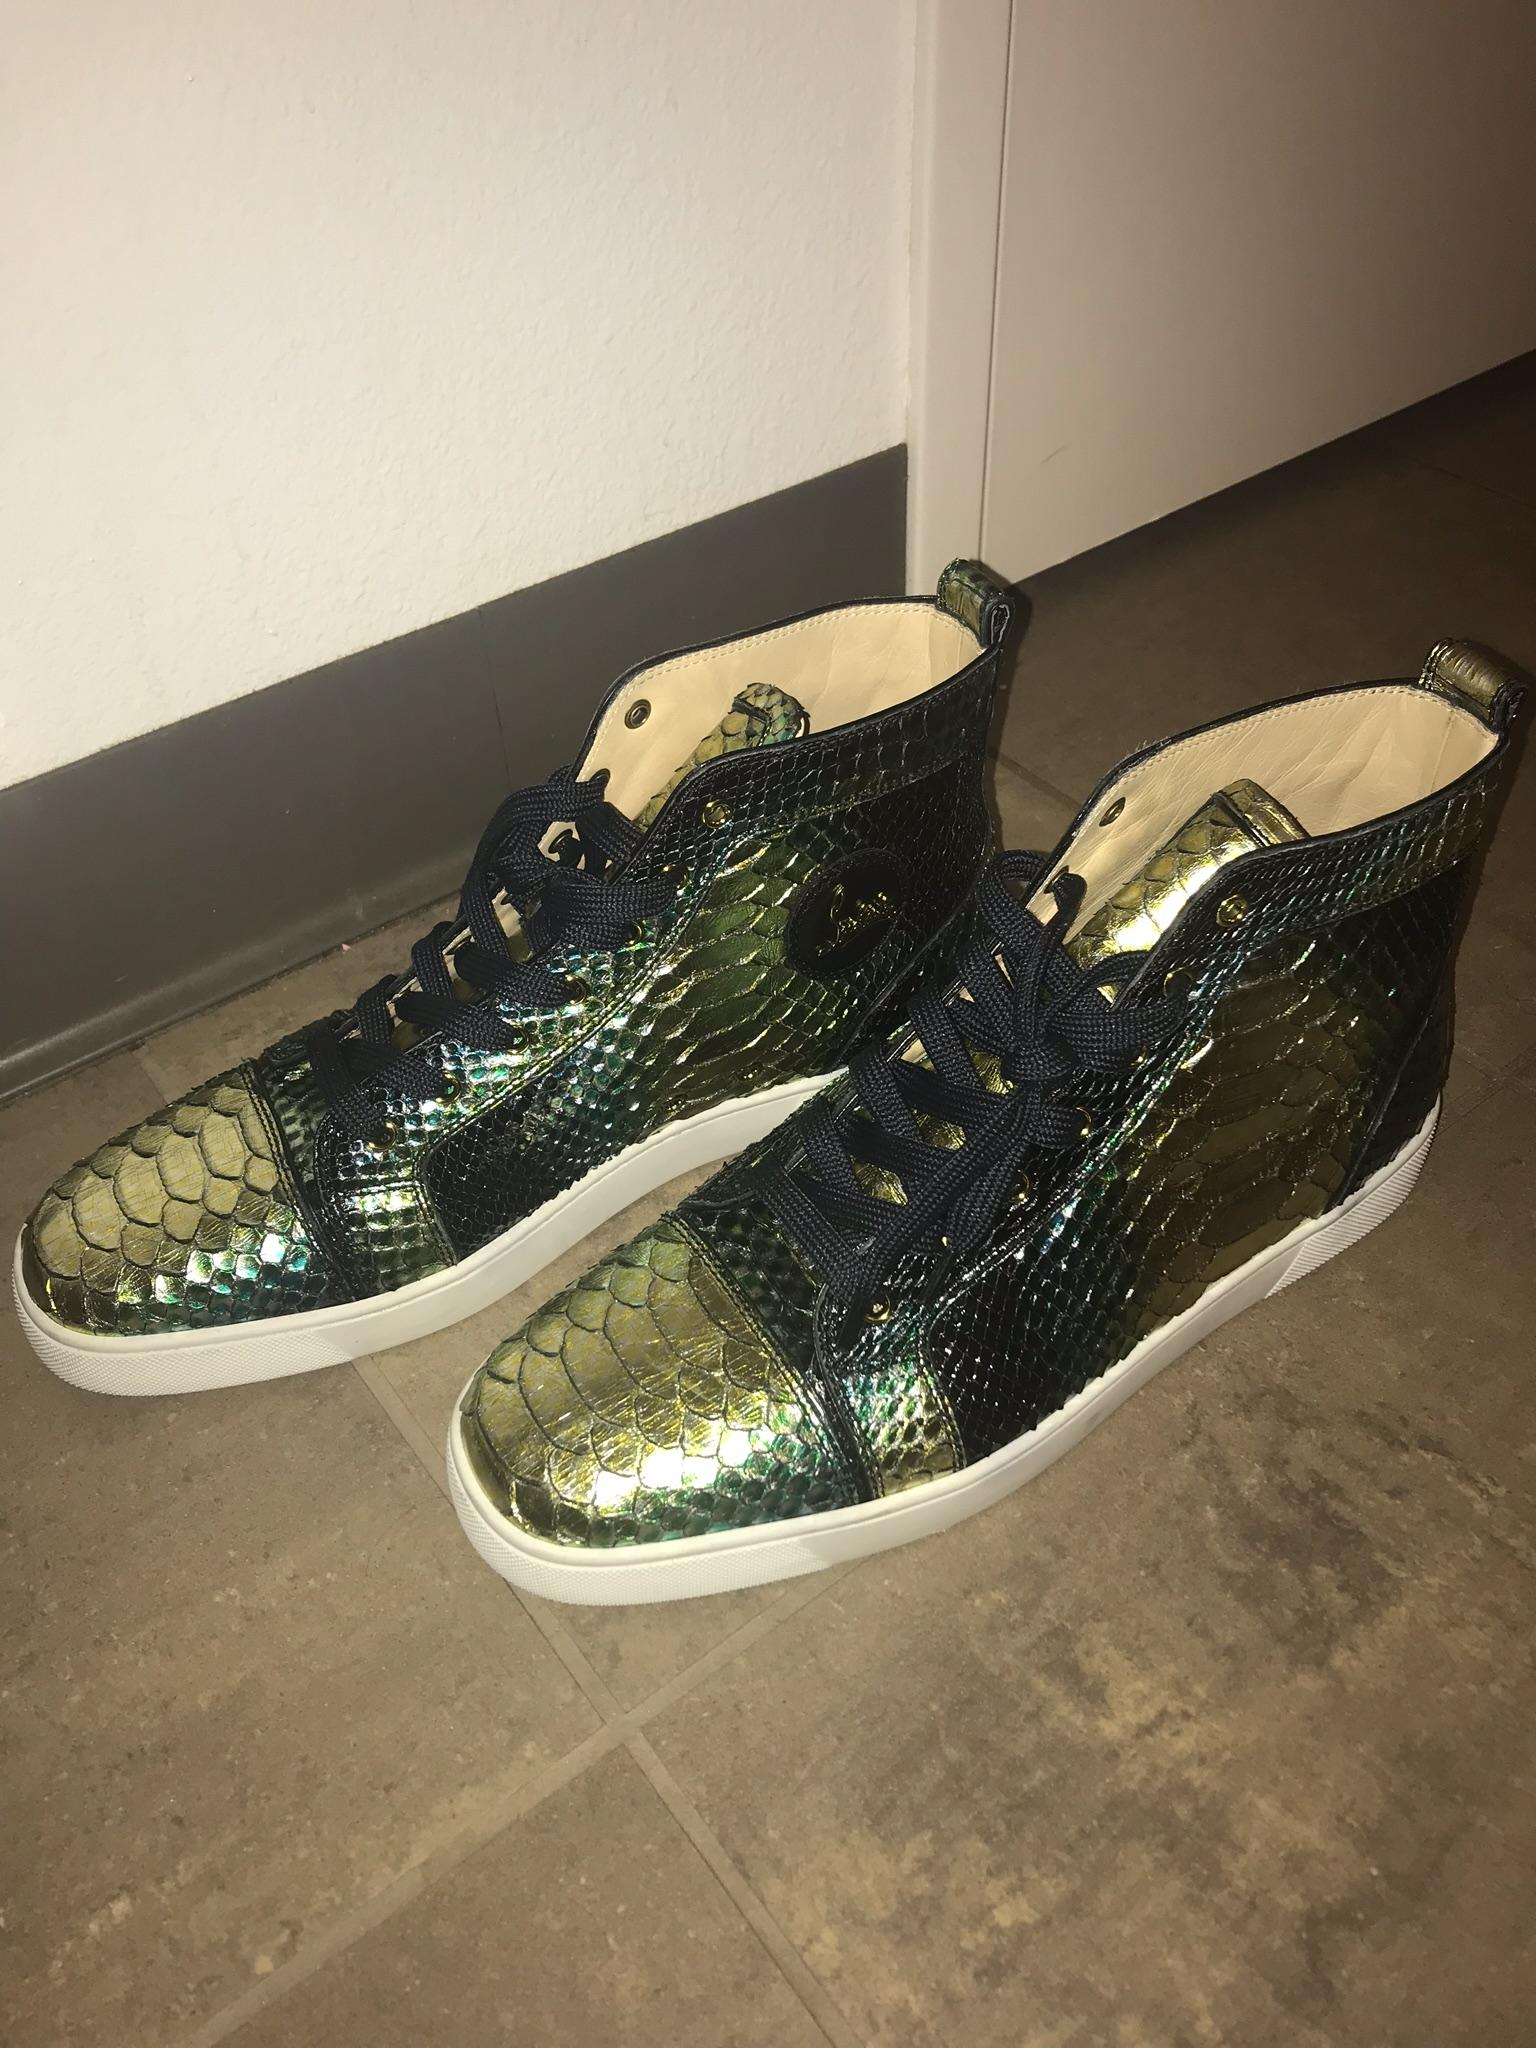 bf96c55cd9f6 ... Christian Louboutin Gold Black Green Men s Louis Flat Mimosa Sneakers  Size Size Size US ...